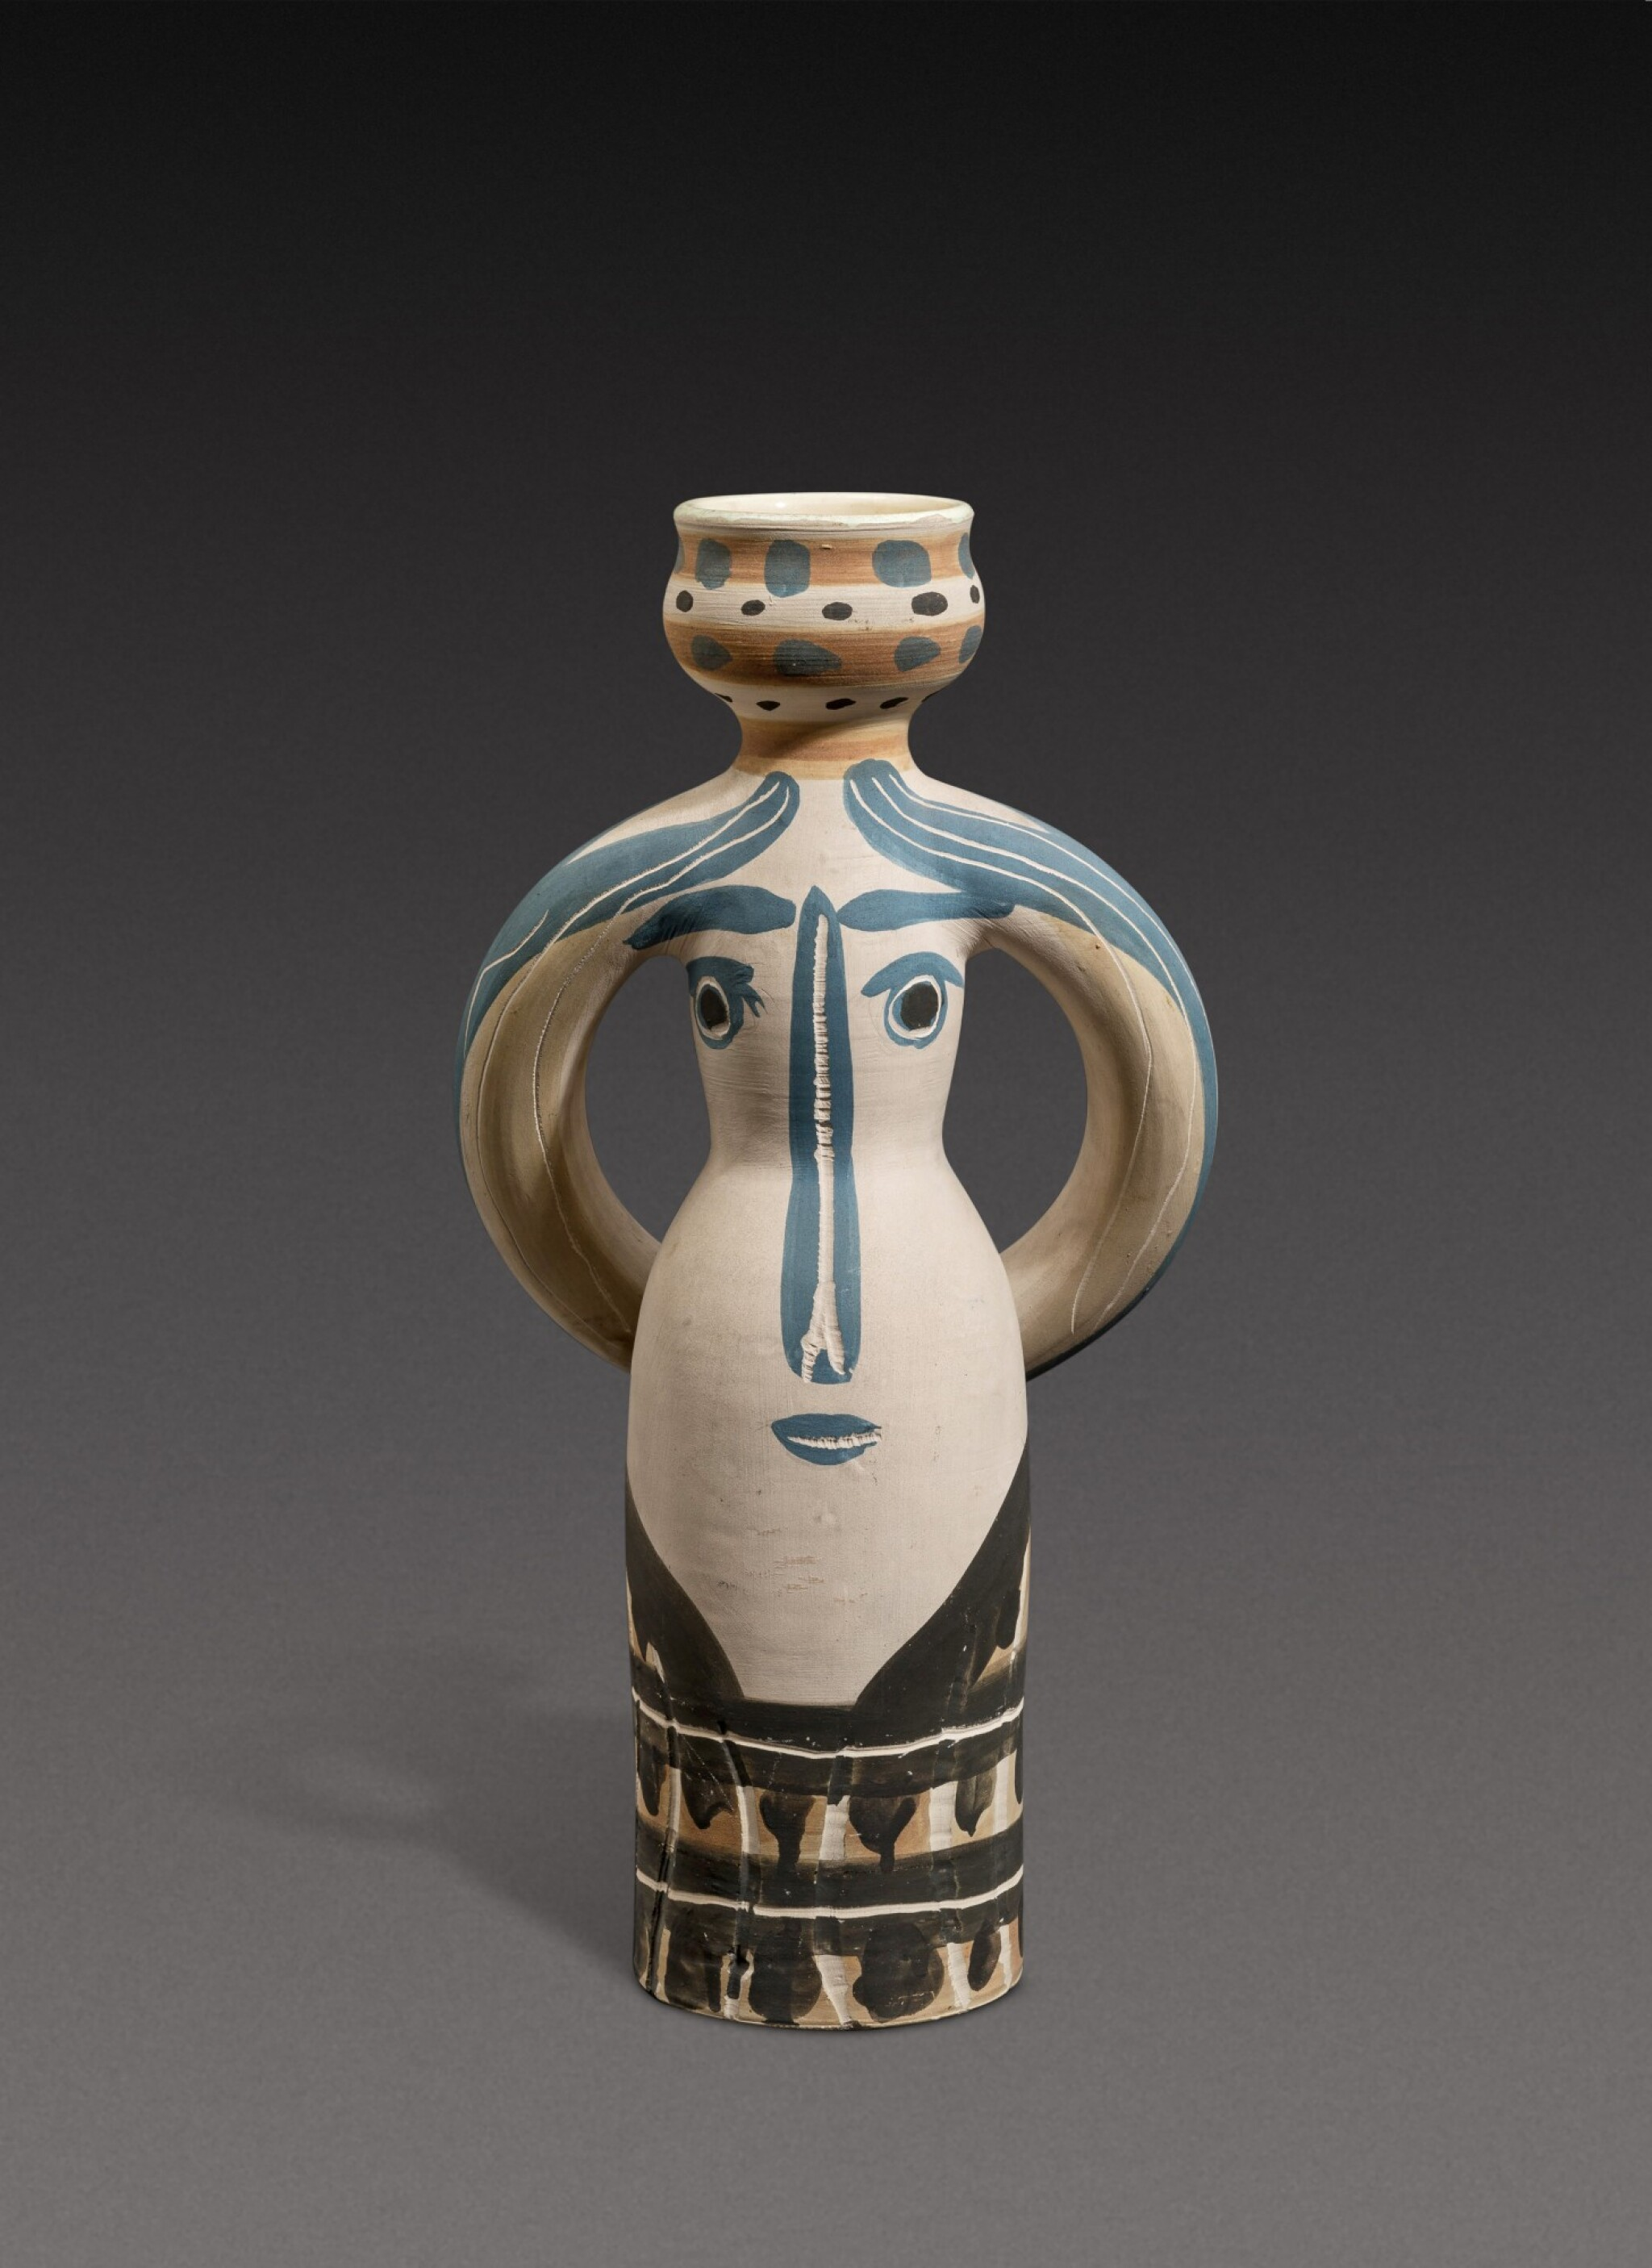 View 1 of Lot 7. Lampe femme (See A. R. 294-295, 298-299).